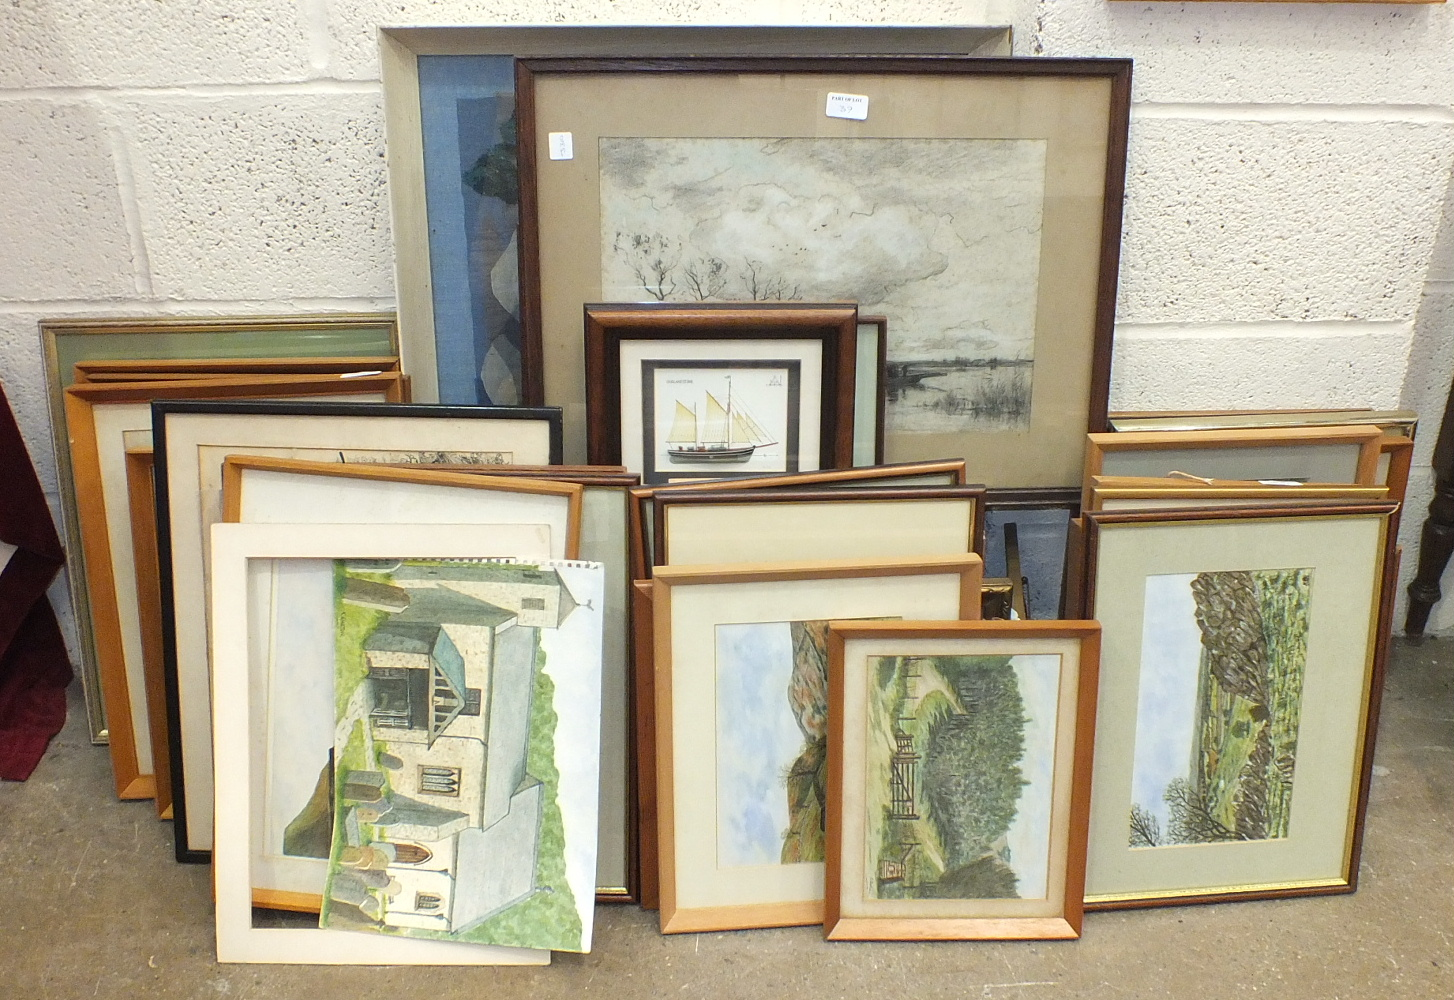 A collection of amateur watercolours and drawings by K Garton, mainly Dartmoor scenes. - Image 2 of 4